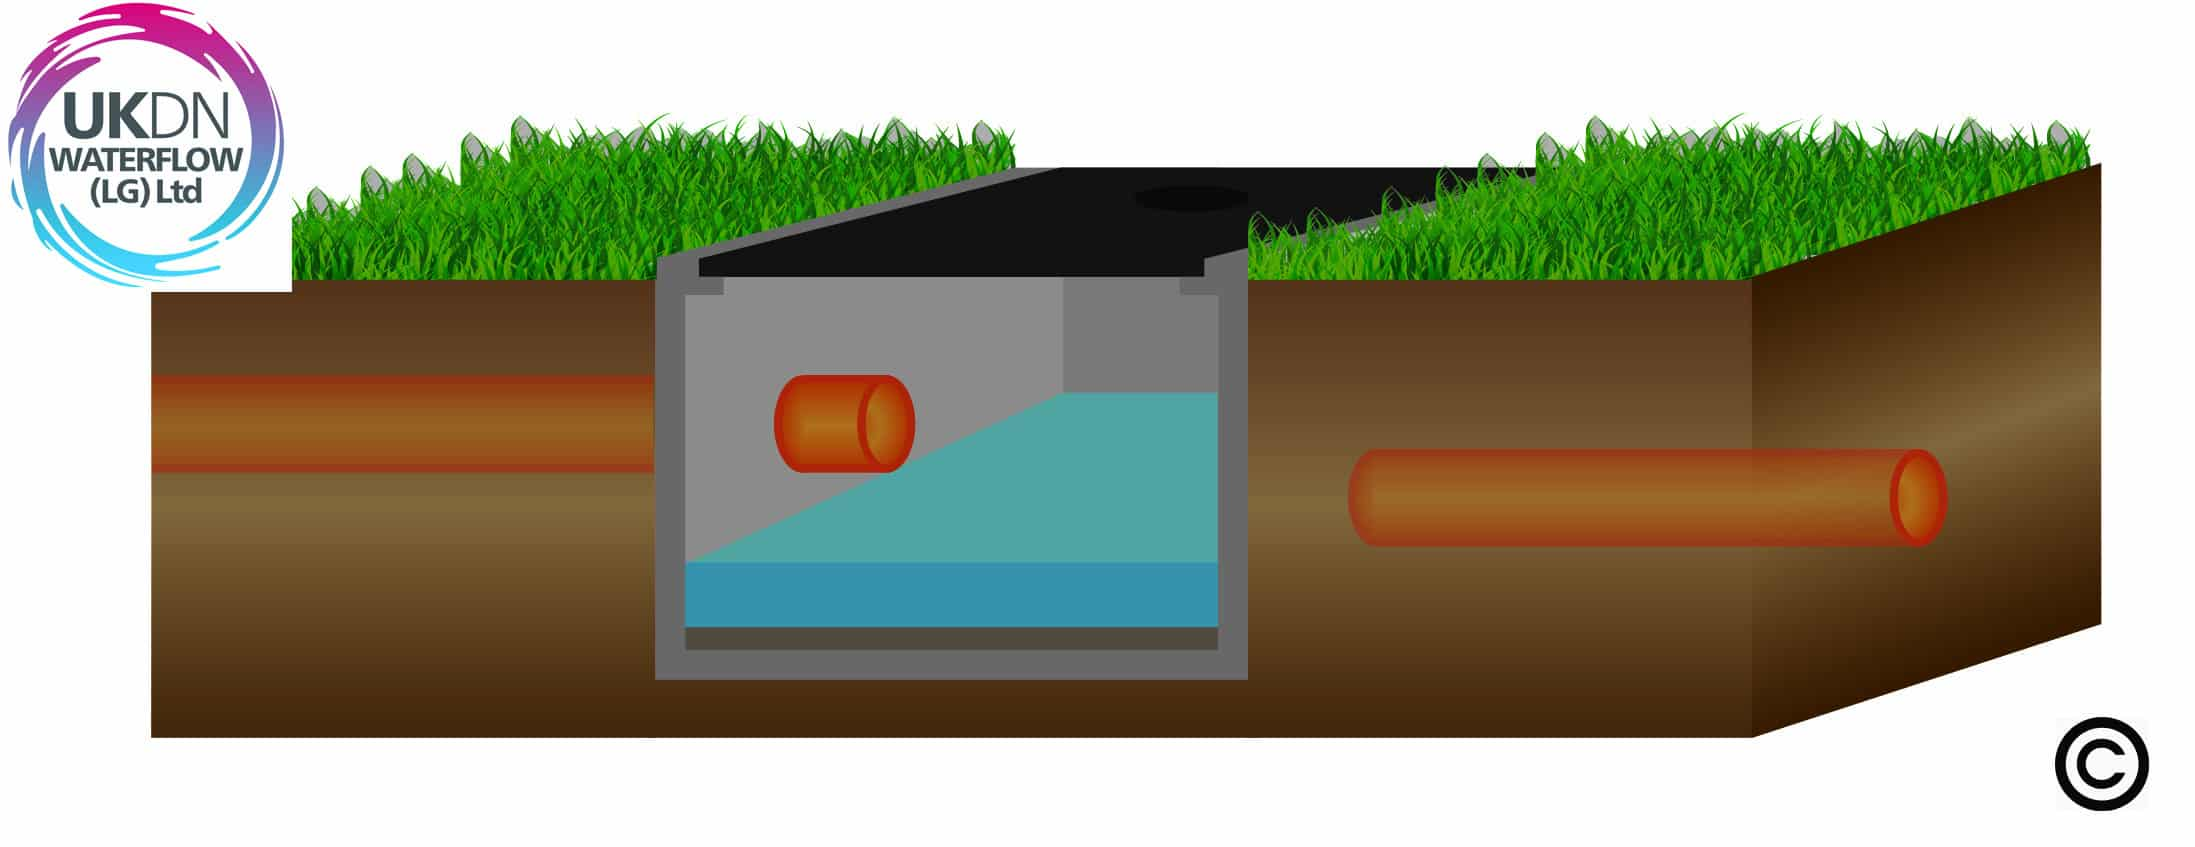 What Is A Catch Pit Advice Ukdn Waterflow Lg